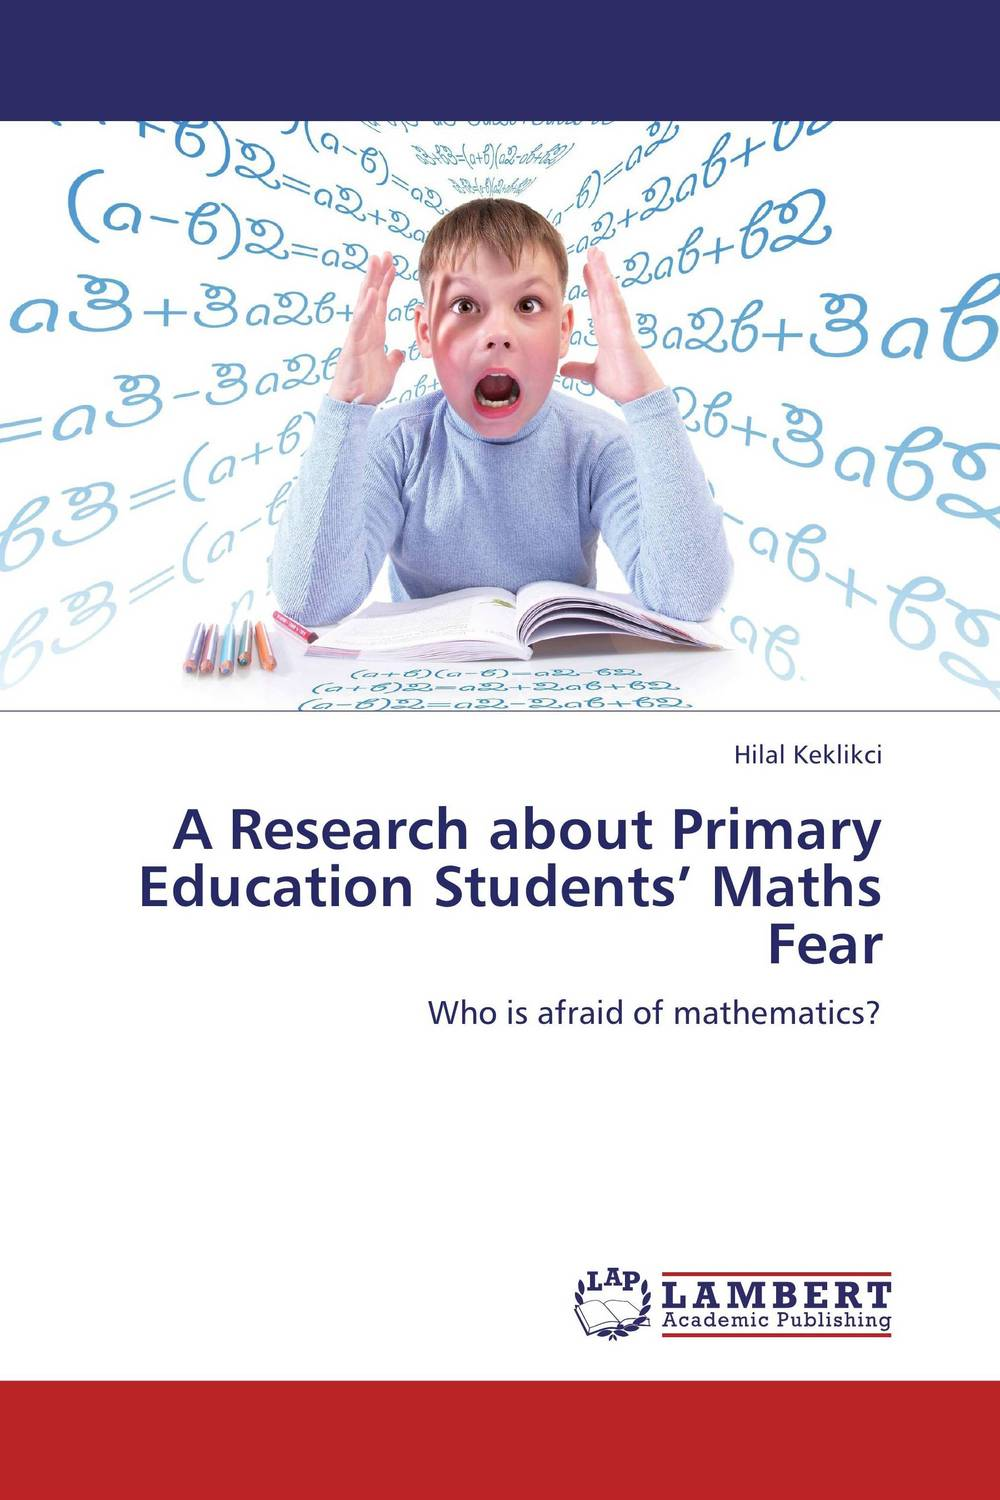 A Research about Primary Education Students' Maths Fear white amur frenzy voices in the head fear and struggle with neither